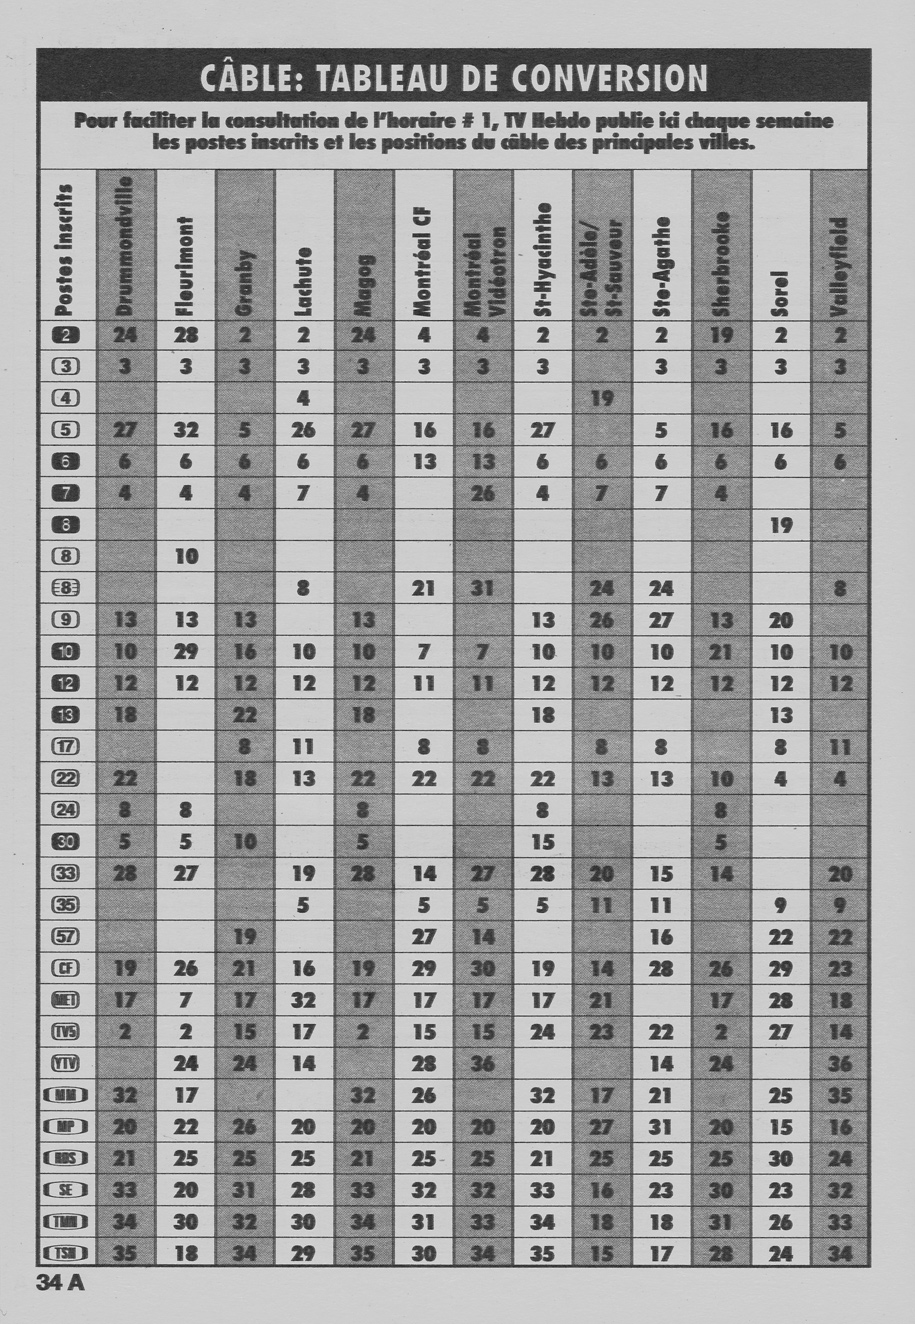 Vintage channel guide from a french publication tv hebdo for Tableau de conversion